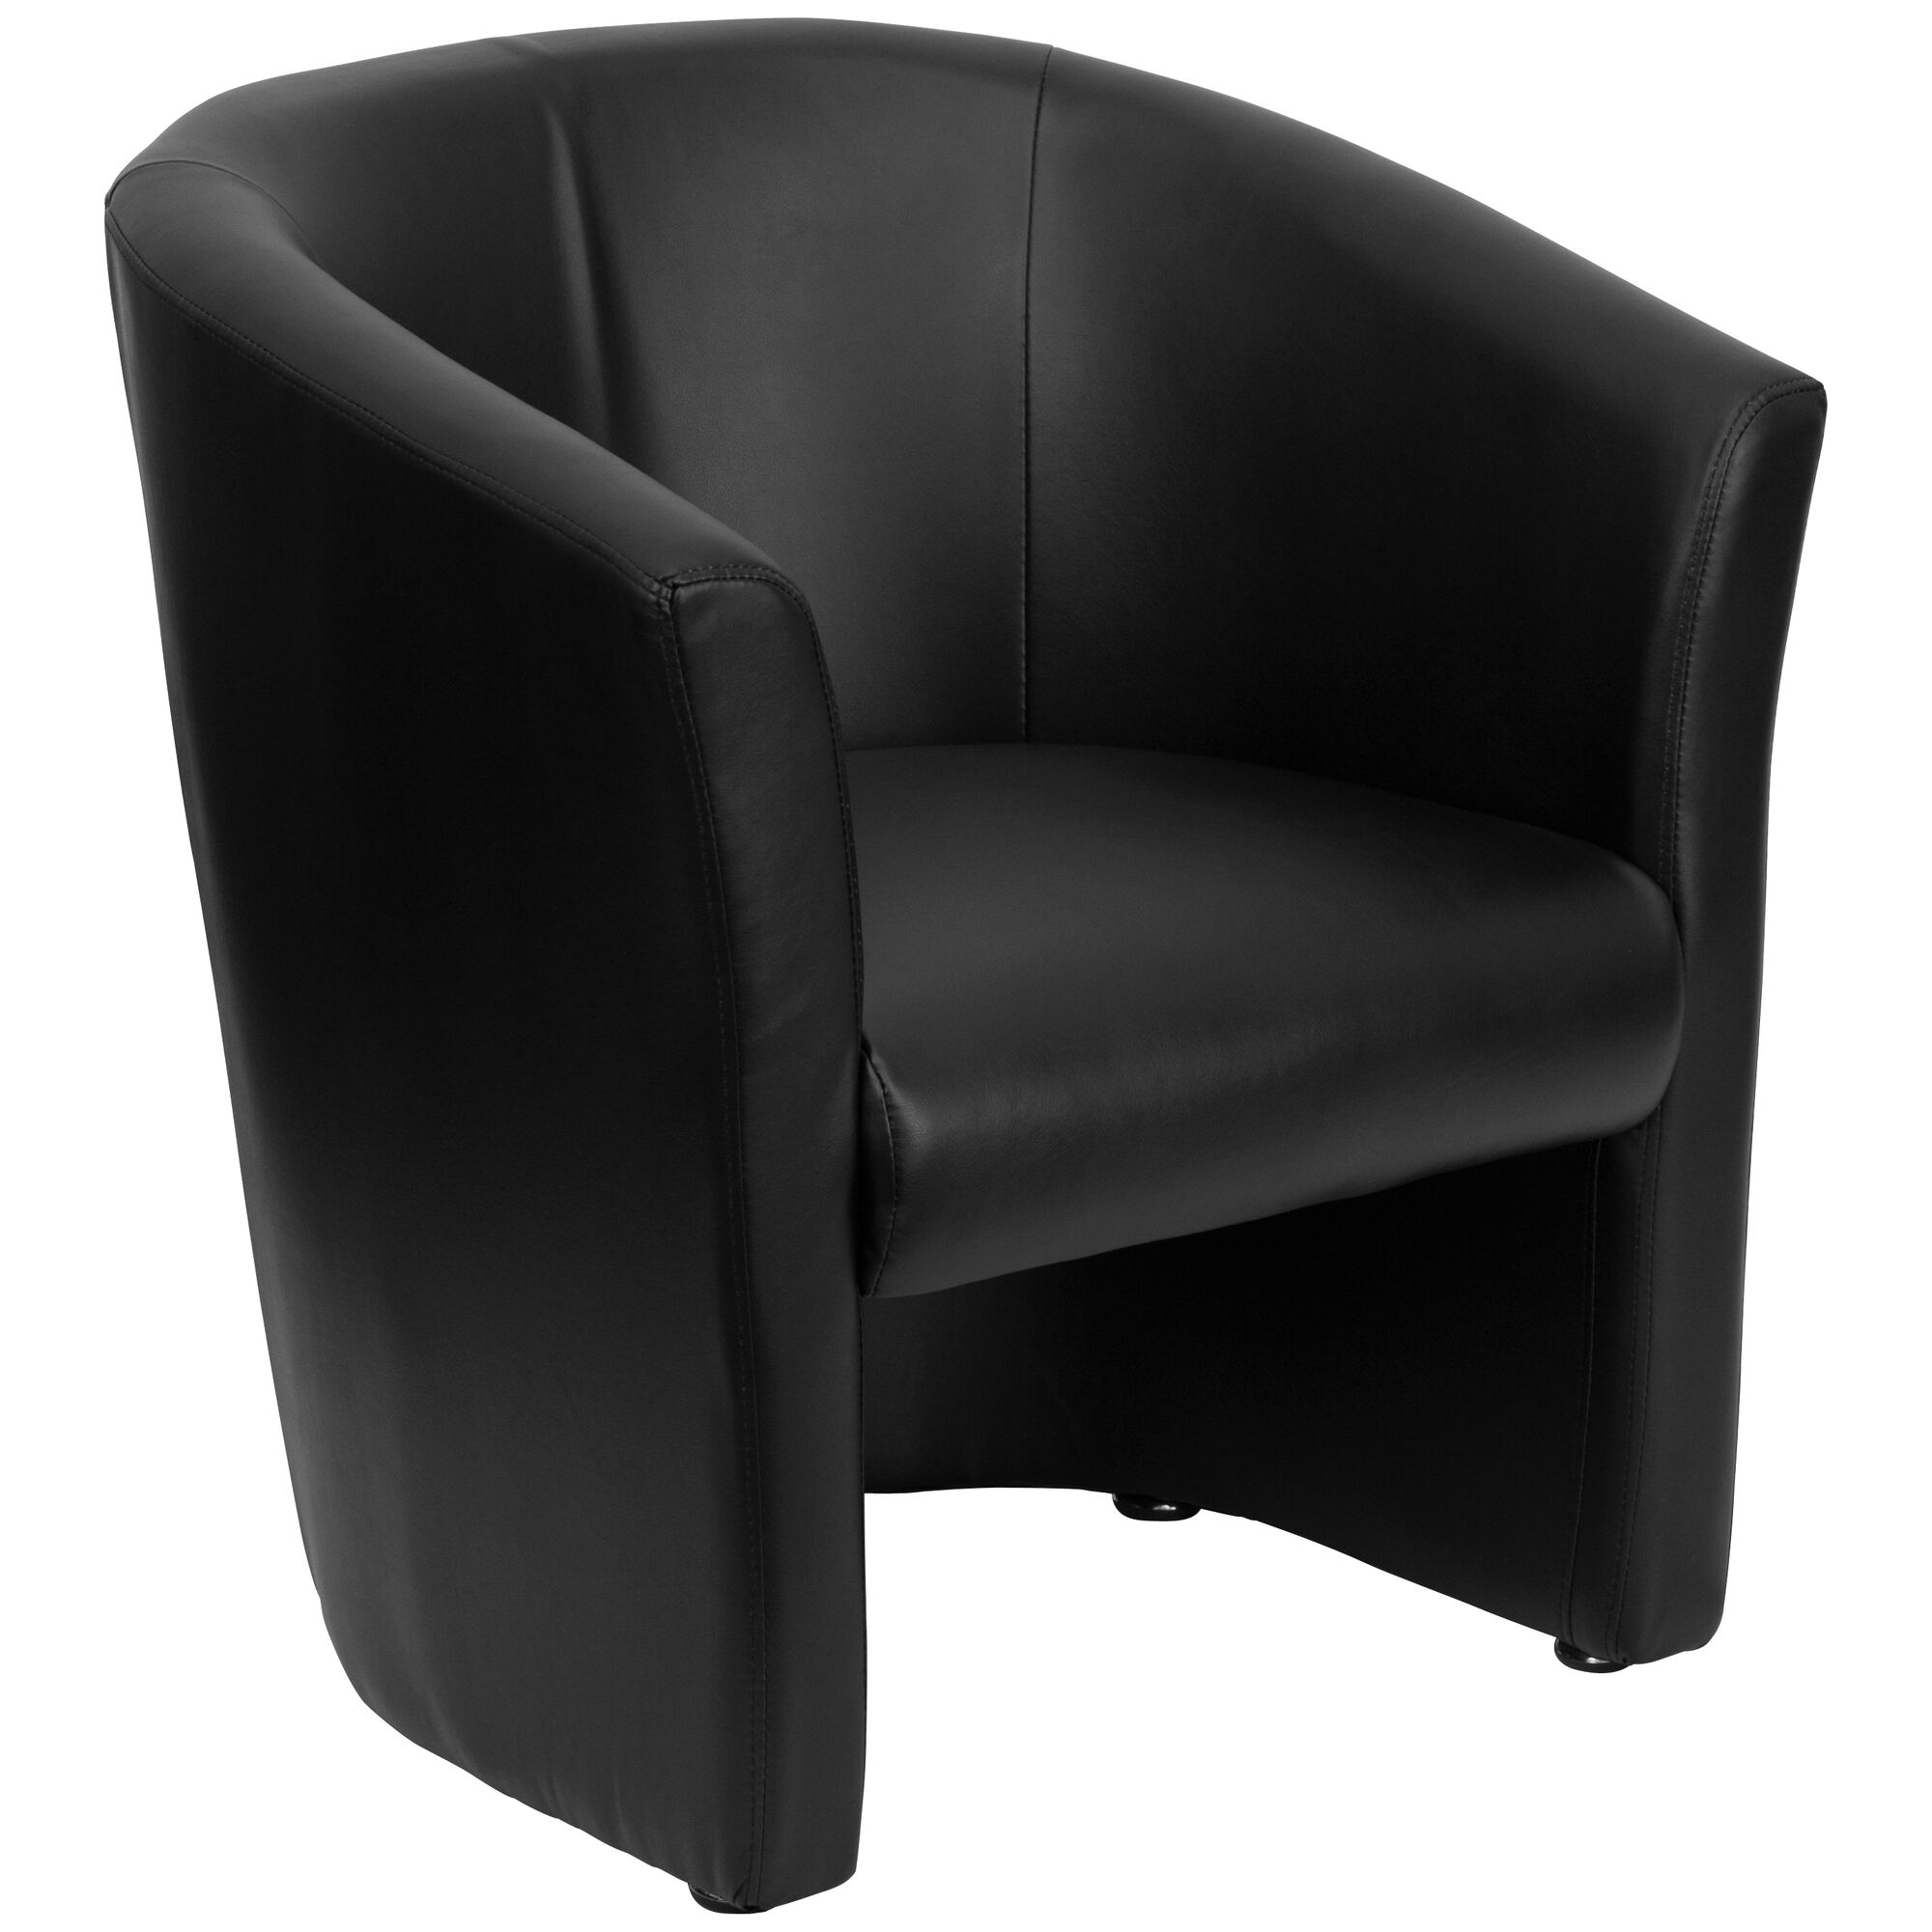 Our Black Leather Barrel Shaped Guest Chair Is On Sale Now